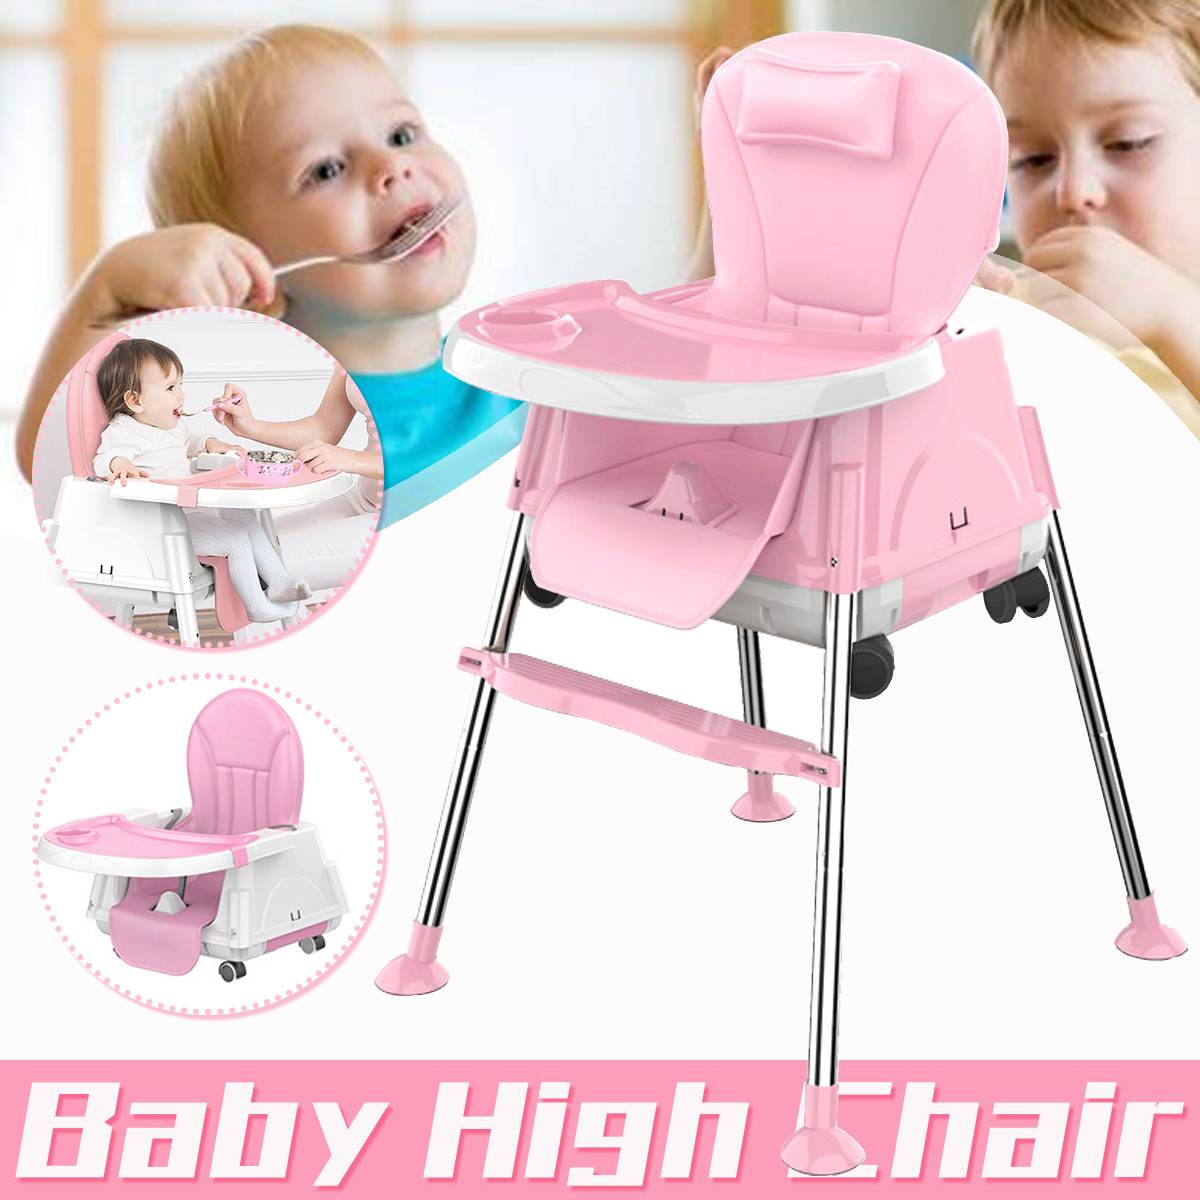 NEW Portable Multifunctional Baby Seat Baby Dinner Table Multifunction Adjustable Convertible Baby Chairs for Child